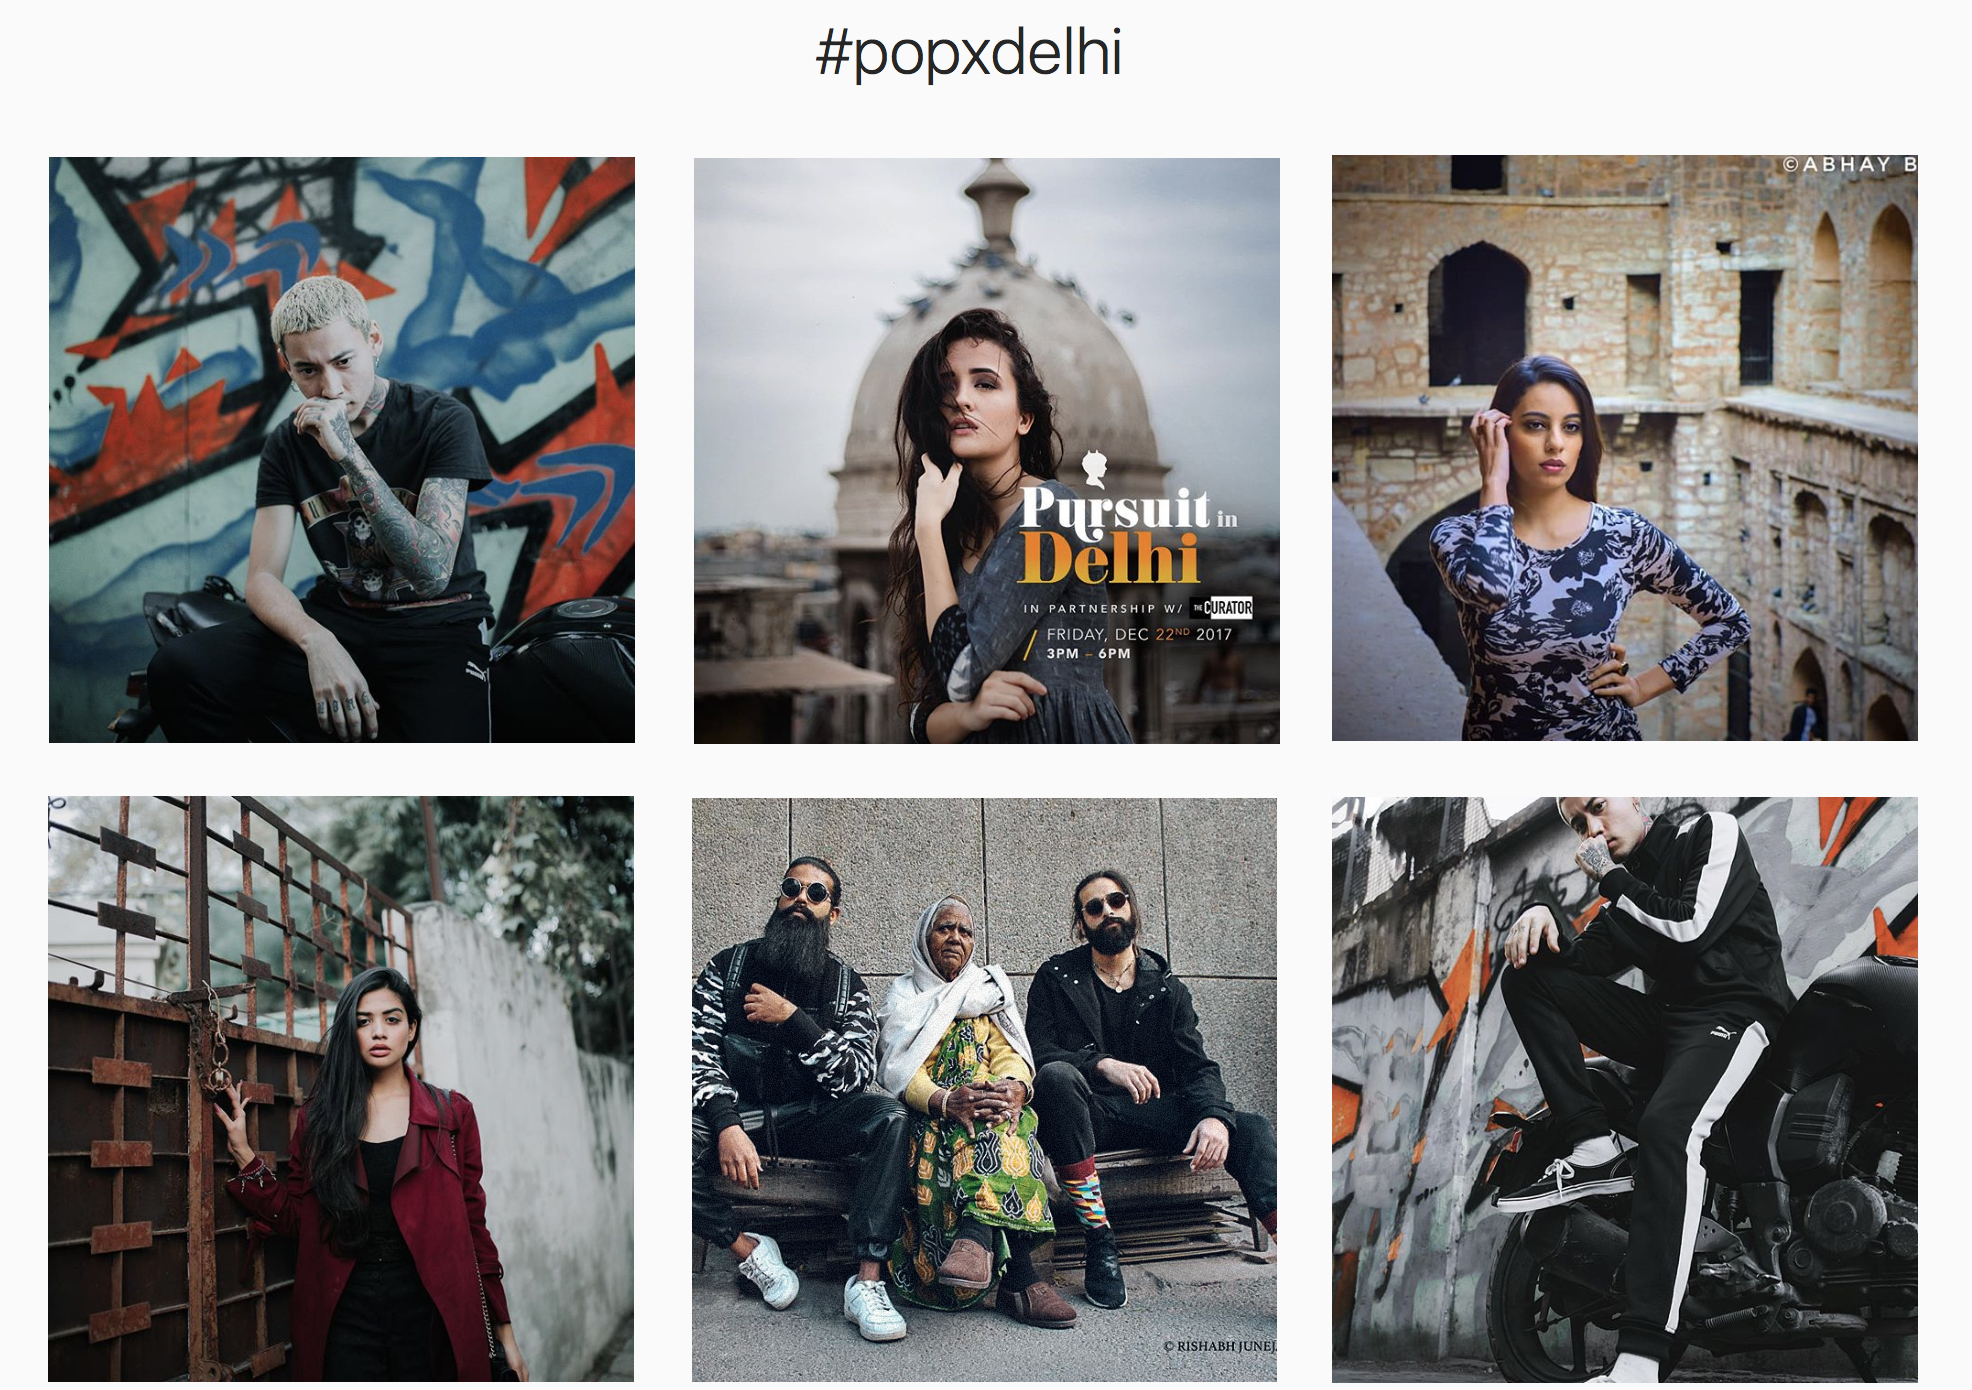 Select photos above via  #PoPxDelhi